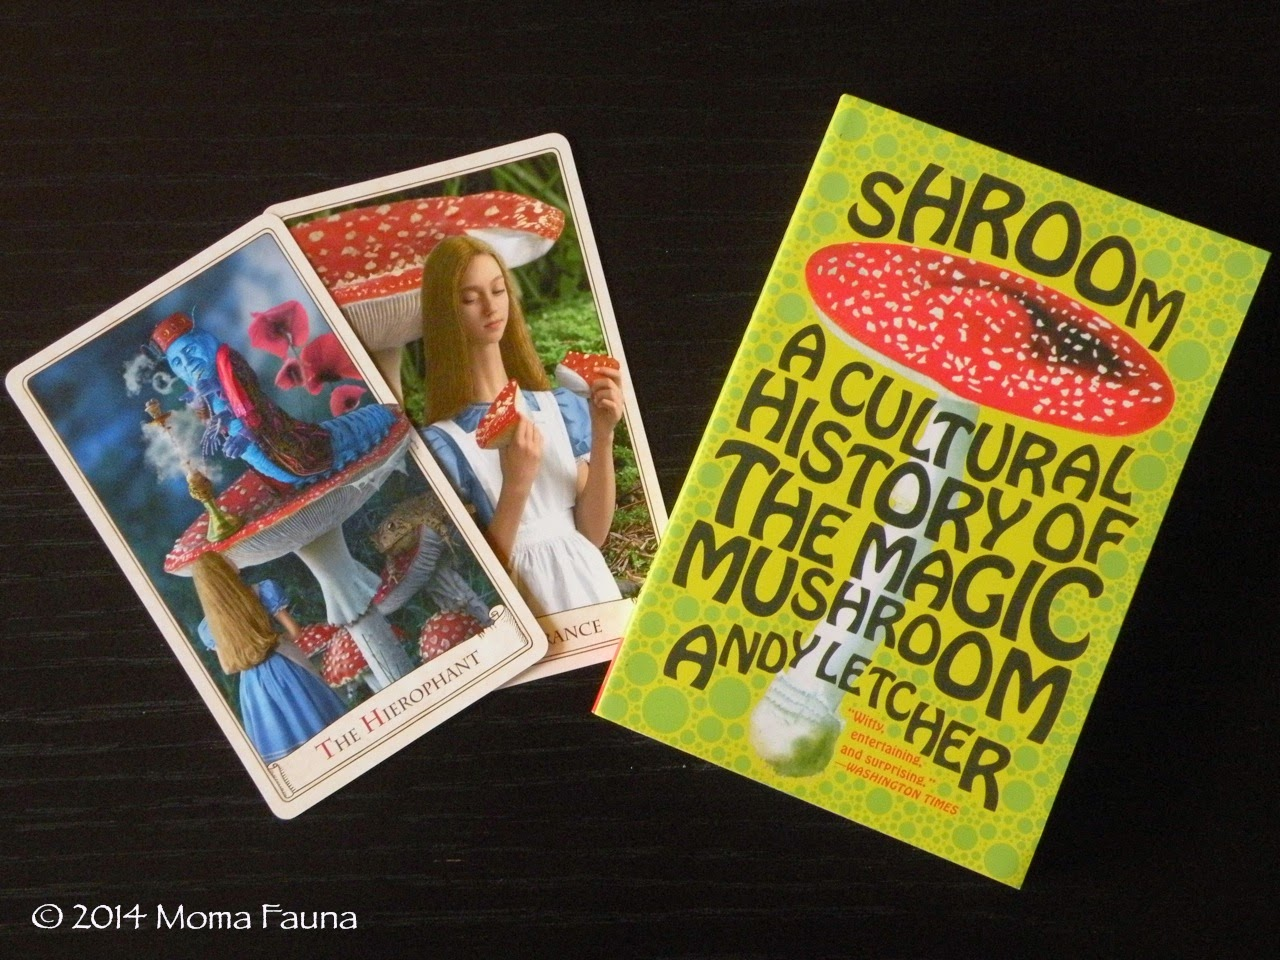 Day 1: Cards from Prague: The Alice Tarot. Day 2: Shroom: a mystery gift from a kindred spirit.